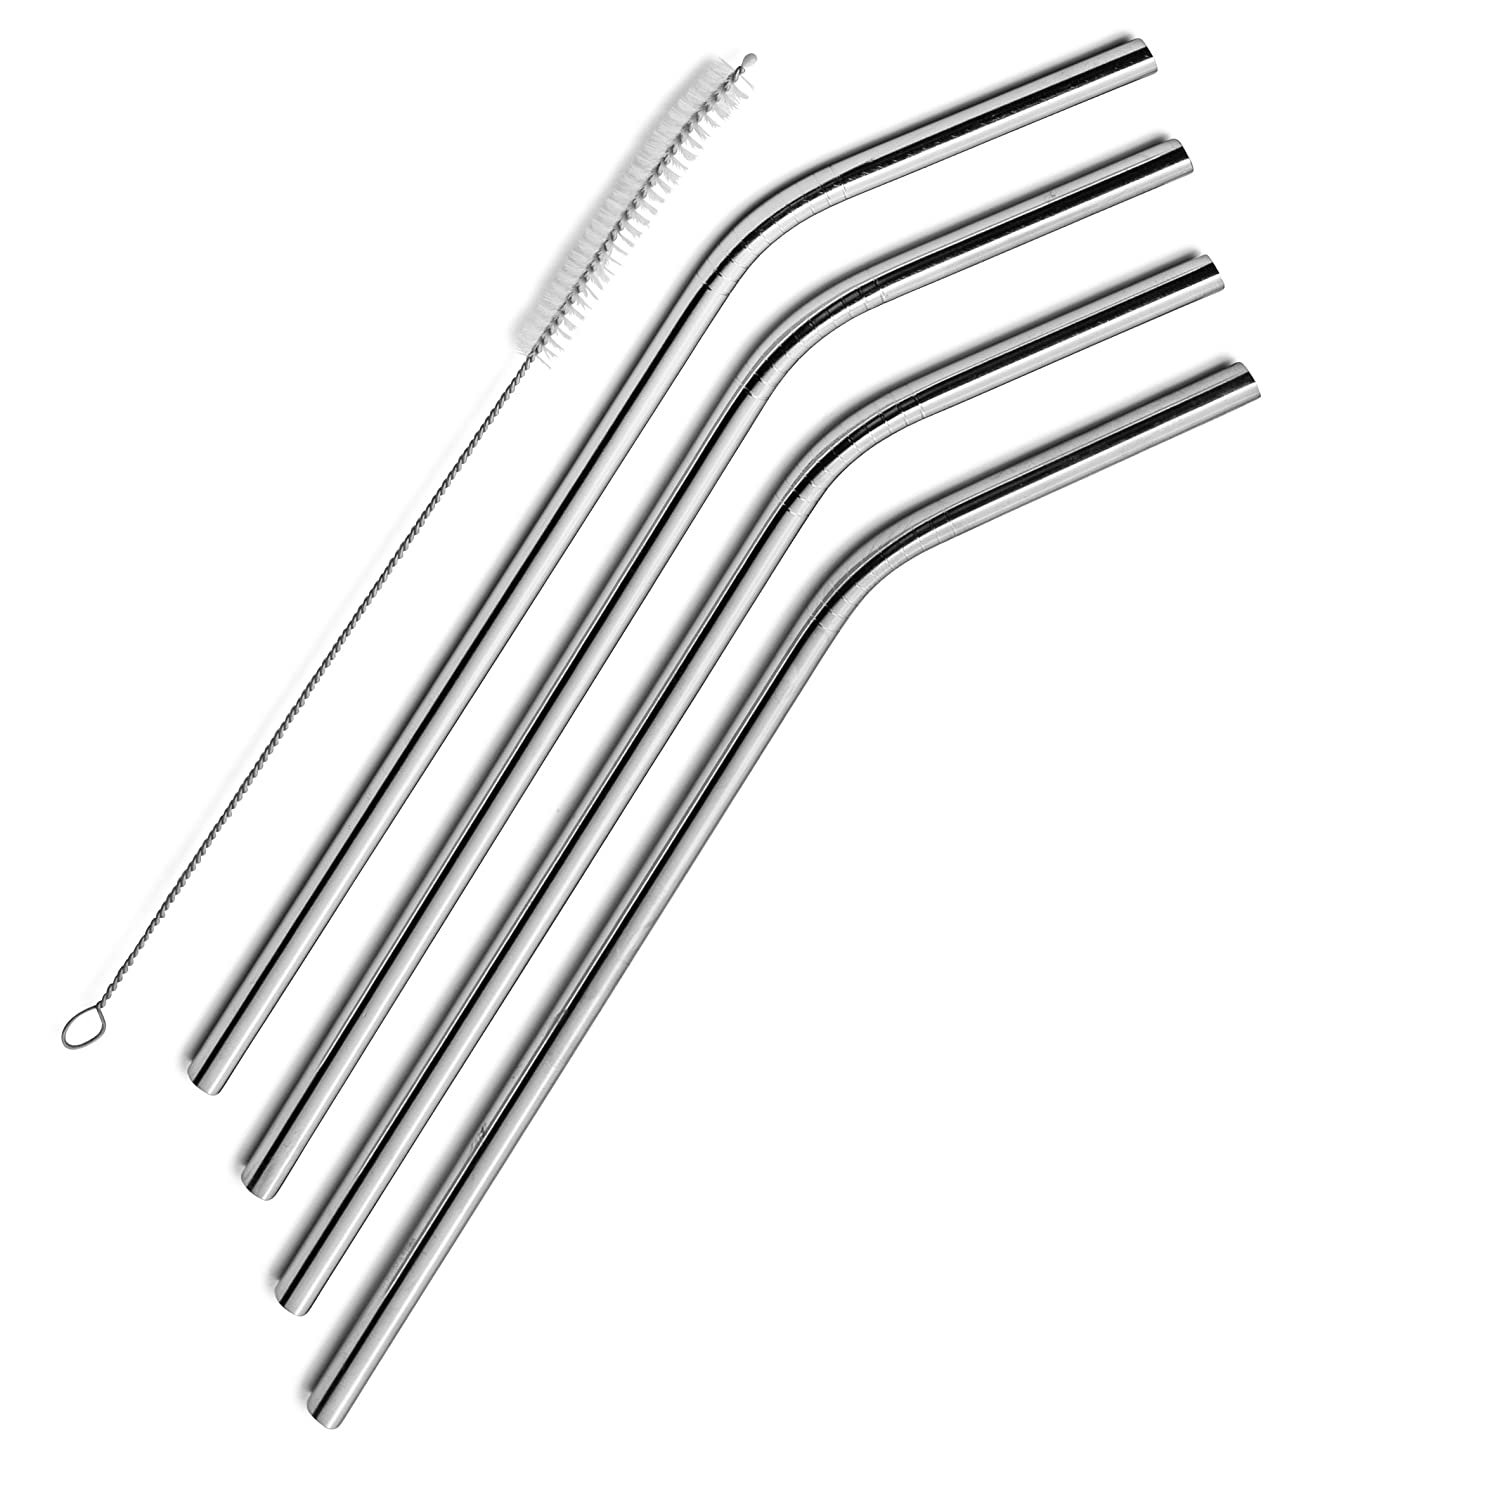 SipWell Extra Long Stainless Steel Drinking Straws Set of 4 Straws for 30 oz Tumbler and 20 0z Tumbler Fits RTIC Tumbler | Fits all Yeti Ozark Trail SIC RTIC Tumblers Cleaning Brush Included.